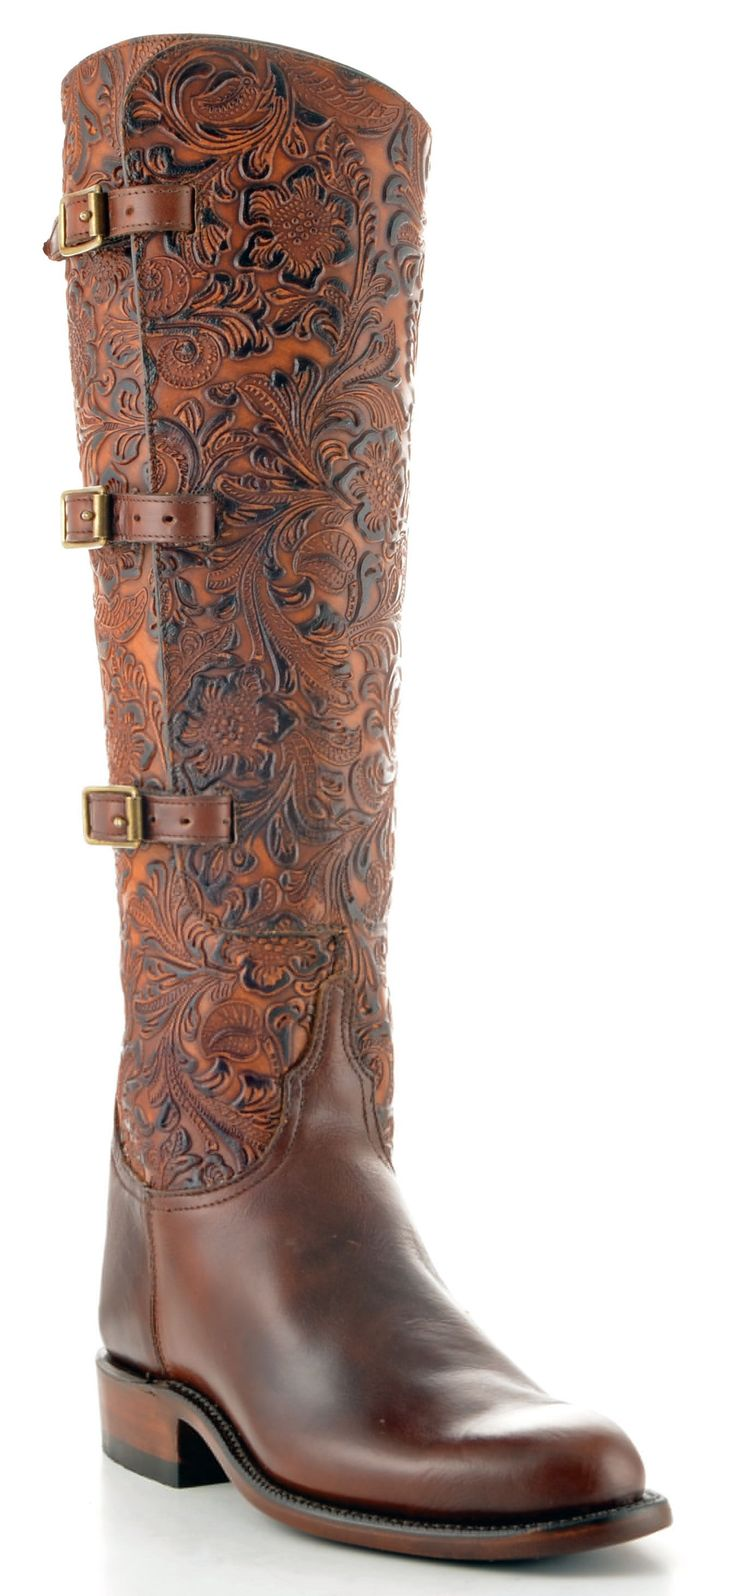 Lucchese Floral Tooled Boots: In Love, Tools Boots, Lucches Floral, Floral Tools, Women Lucch, Riding Boots, Lucch Floral, Floral Boots, Tools Leather